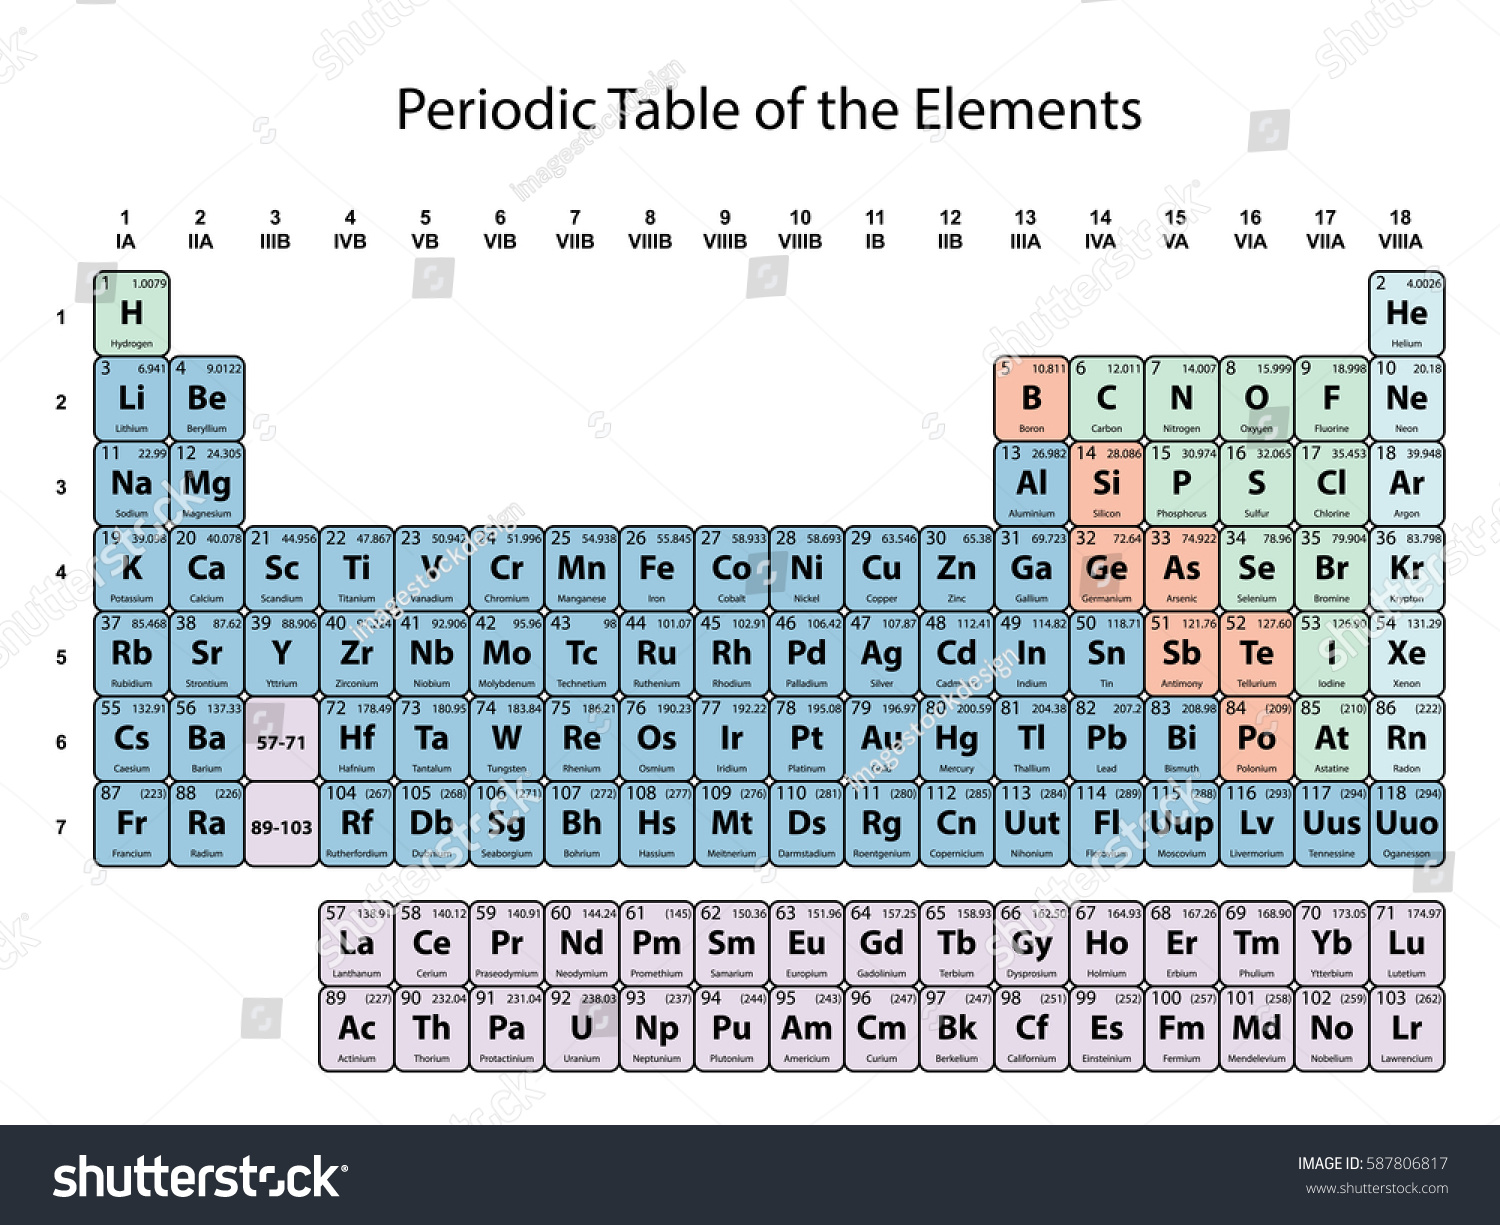 Periodic table elements atomic number symbol stock vector hd periodic table of the elements with atomic number symbol and weight with color delimitation on urtaz Images